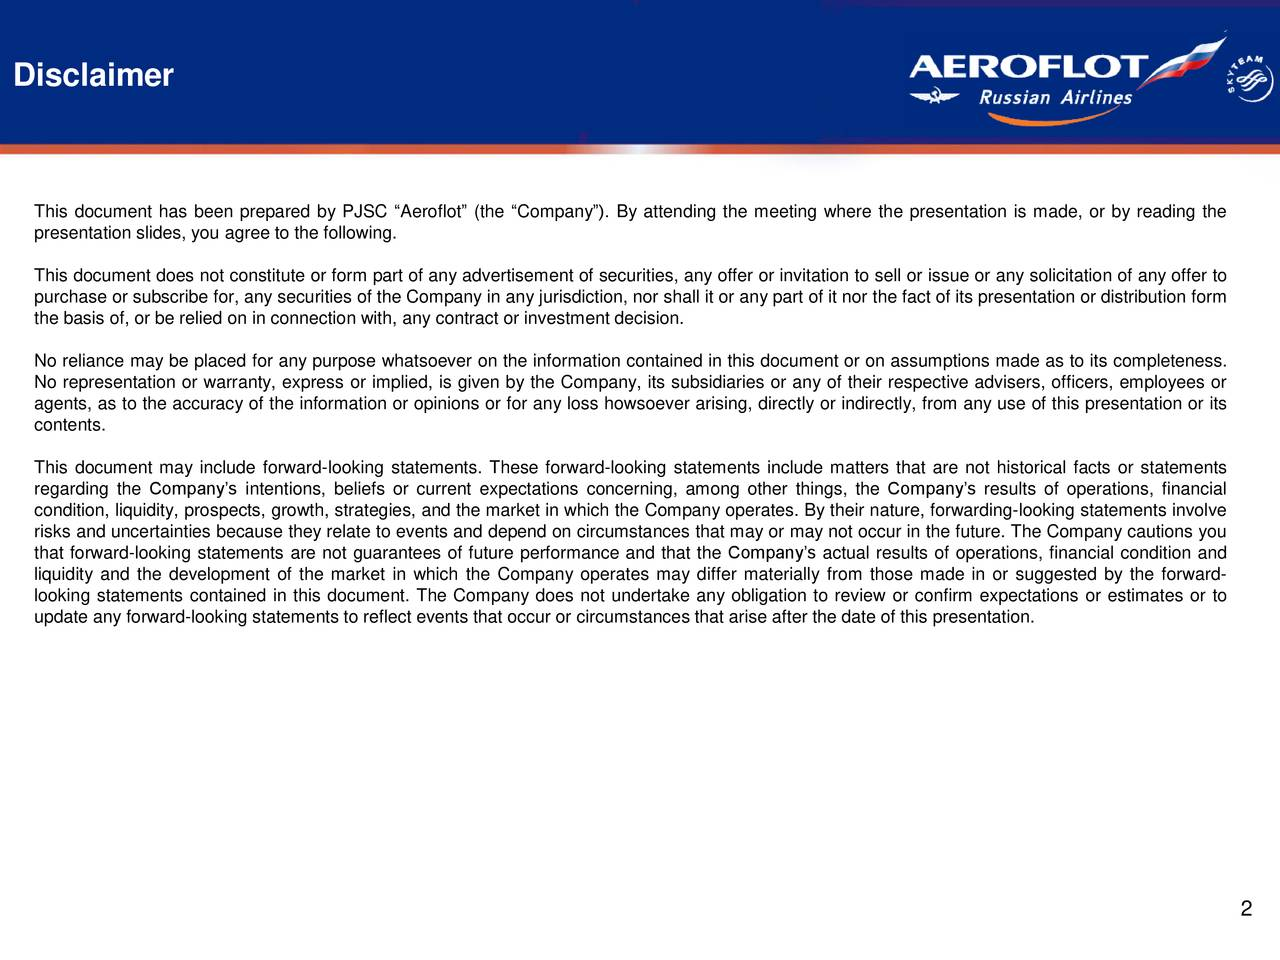 """This document has been prepared by PJSC """"Aeroflot"""" (the """"Company""""). By attending the meeting where the presentation is made, or by reading the presentation slides, you agree to the following. This document does not constitute or form part of any advertisement of securities, any offer or invitation to sell or issue or any solicitation of any offer to purchase or subscribe for, any securities of the Company in any jurisdiction, nor shall it or any part of it nor the fact of its presentation or distribution form the basis of, or be relied on in connection with, any contract or investment decision. No reliance may be placed for any purpose whatsoever on the information contained in this document or on assumptions made as to its completeness. No representation or warranty, express or implied, is given by the Company, its subsidiaries or any of their respective advisers, officers, employees or agents, as to the accuracy of the information or opinions or for any loss howsoever arising, directly or indirectly, from any use of this presentation or its contents. This document may include forward-looking statements. These forward-looking statements include matters that are not historical facts or statements regarding the Company's intentions, beliefs or current expectations concerning, among other things, the Company's results of operations, financial condition, liquidity, prospects, growth, strategies, and the market in which the Company operates. By their nature, forwarding-looking statements involve risks and uncertainties because they relate to events and depend on circumstances that may or may not occur in the future. The Company cautions you that forward-looking statements are not guarantees of future performance and that the Company's actual results of operations, financial condition and liquidity and the development of the market in which the Company operates may differ materially from those made in or suggested by the forward- looking statements contained in this docu"""